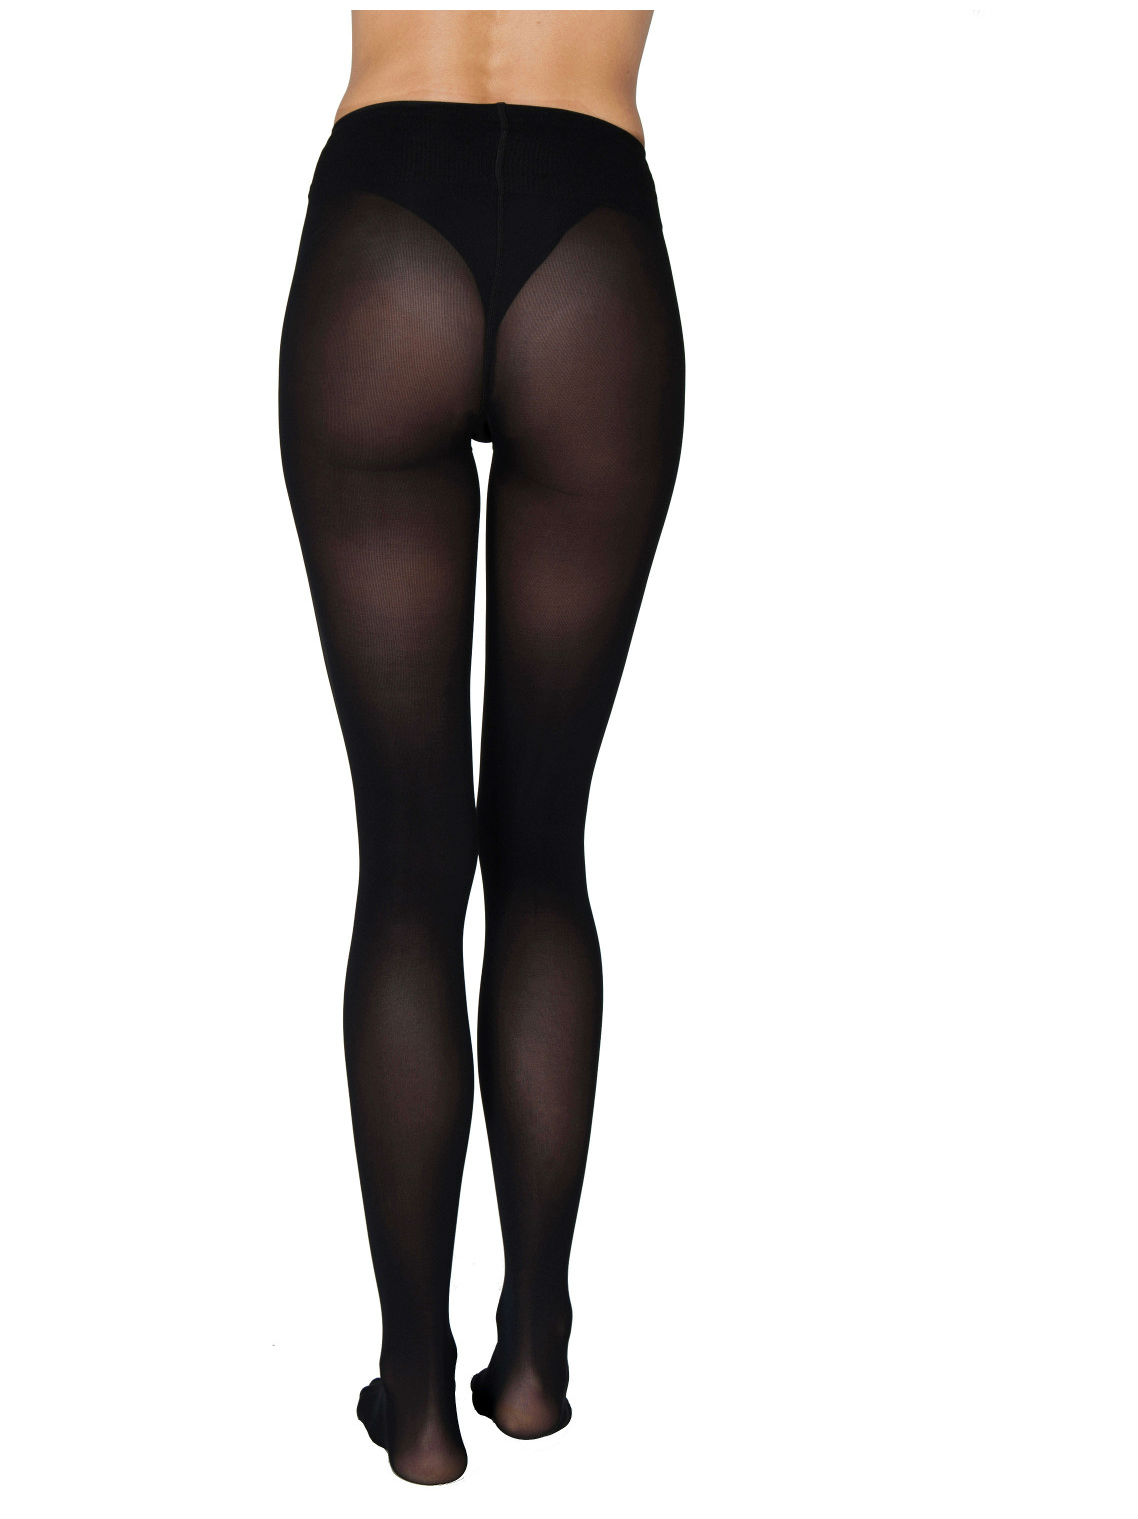 Find great deals on eBay for 60 Denier Tights. Pantyhose. Shop with confidence.